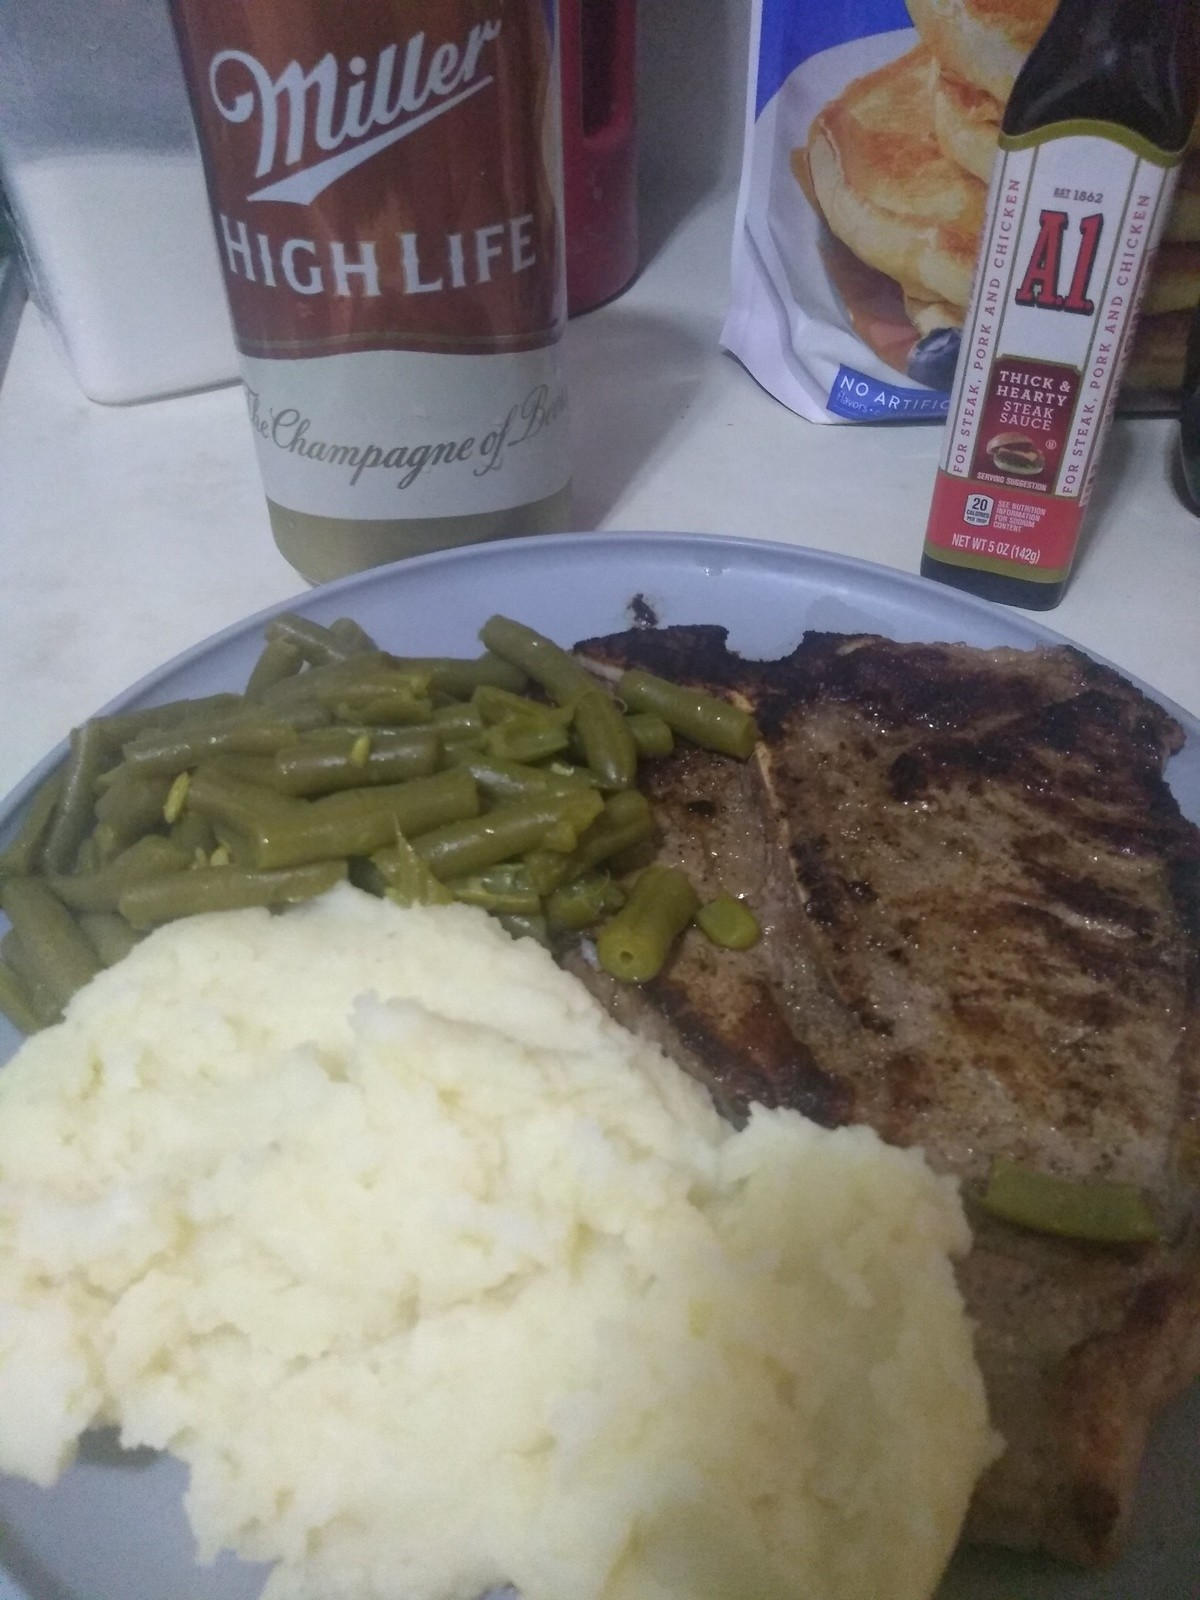 Dinner. T bone with mash potatoes and buttered green beans.. I've never seen a T-Bone Steak that I didn't want to eat until now. Over-cooked, under-seasoned meat paired with canned veggies and dry mashed potatoes. at leas